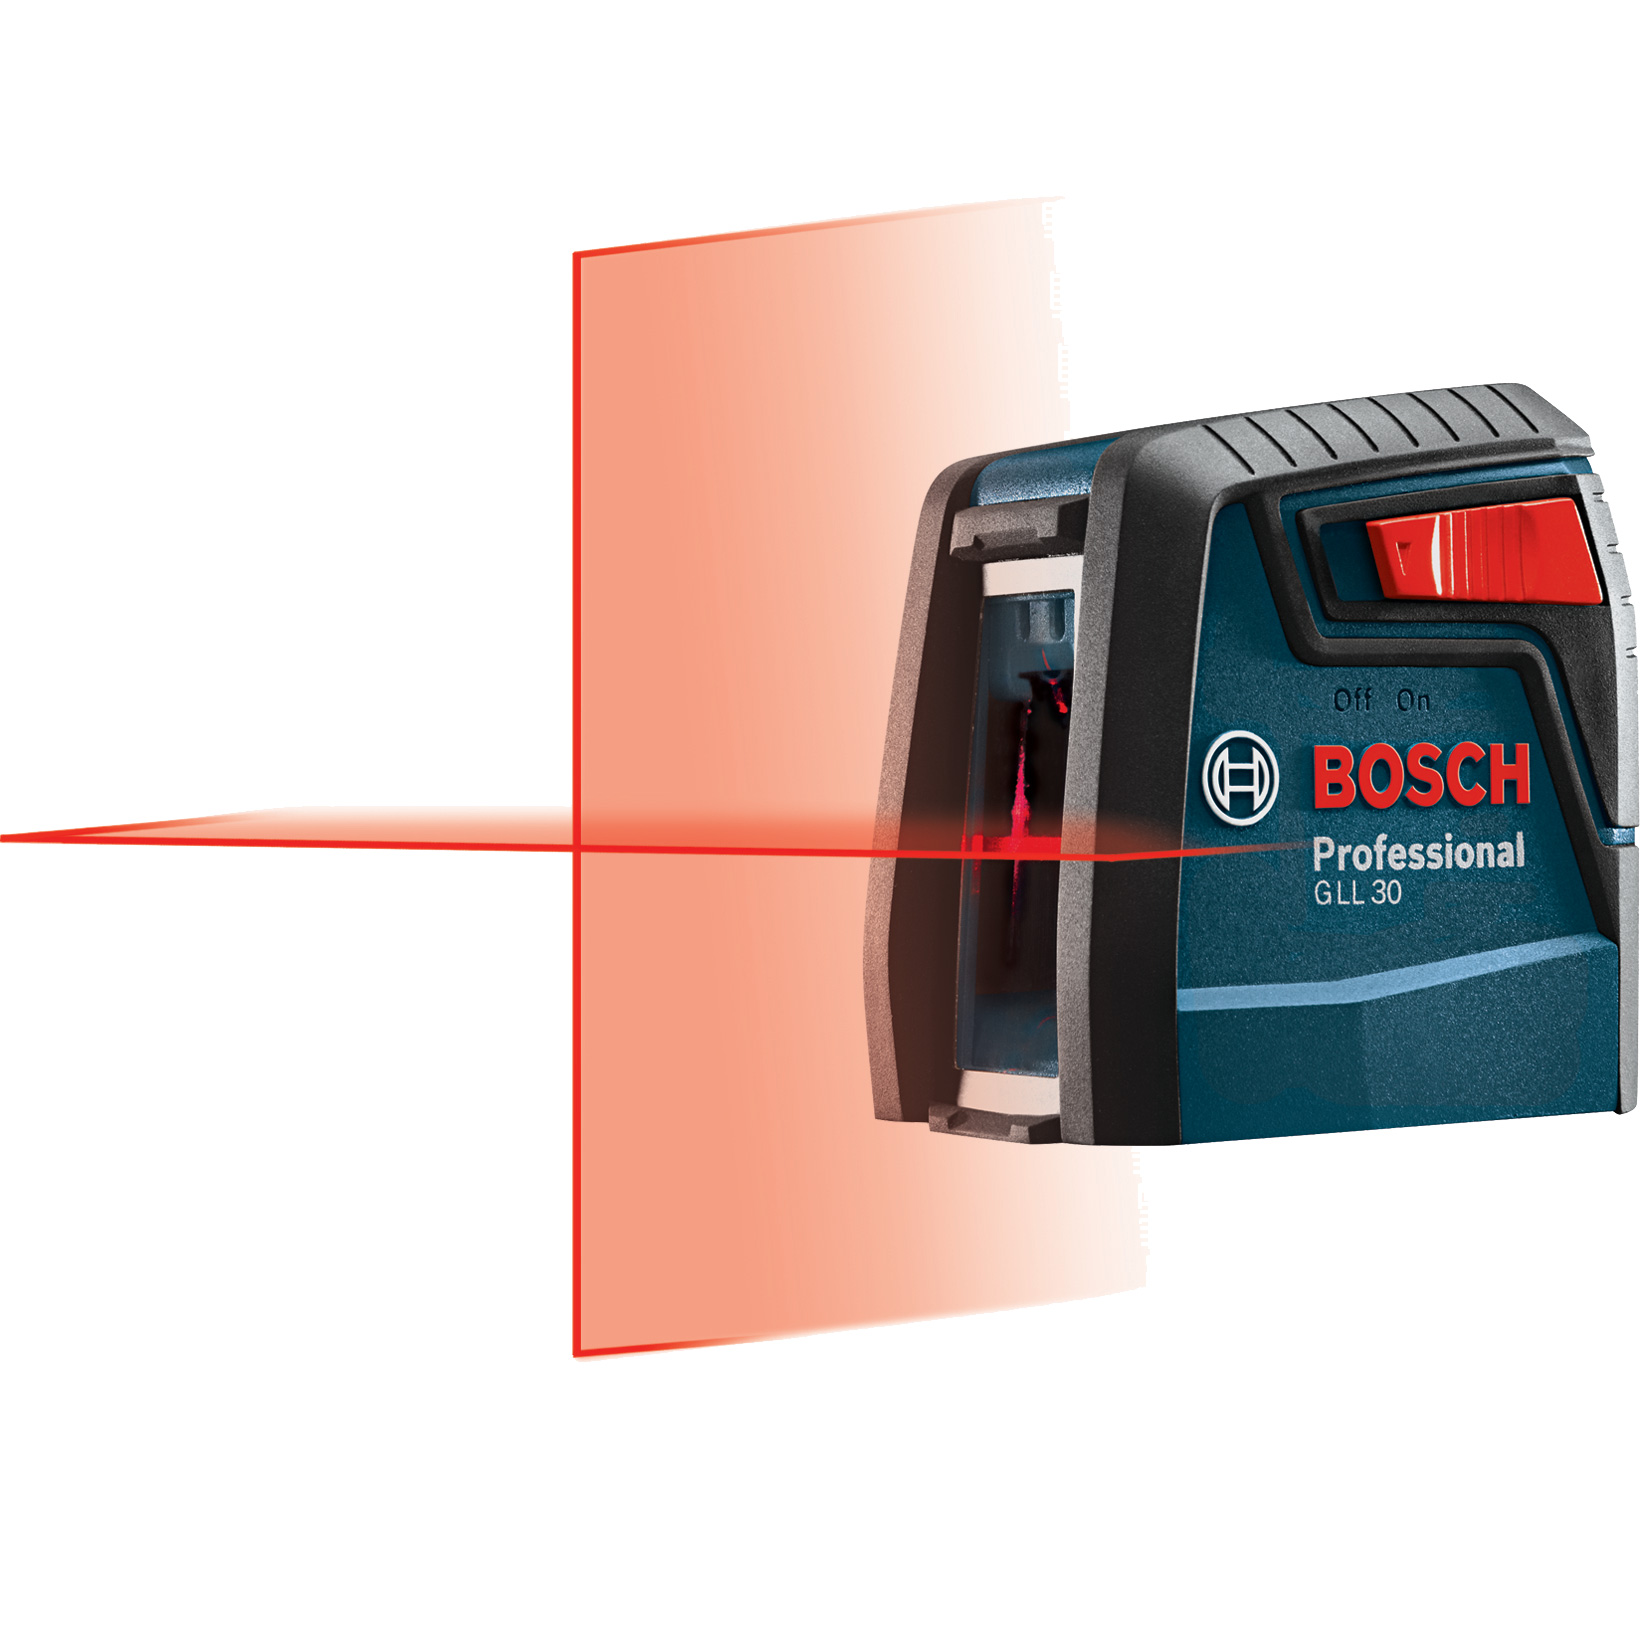 Bosch GLL30-RT 30' Self-Leveling Cross-Line Laser Mfr. Refurbished by Bosch Power Tools